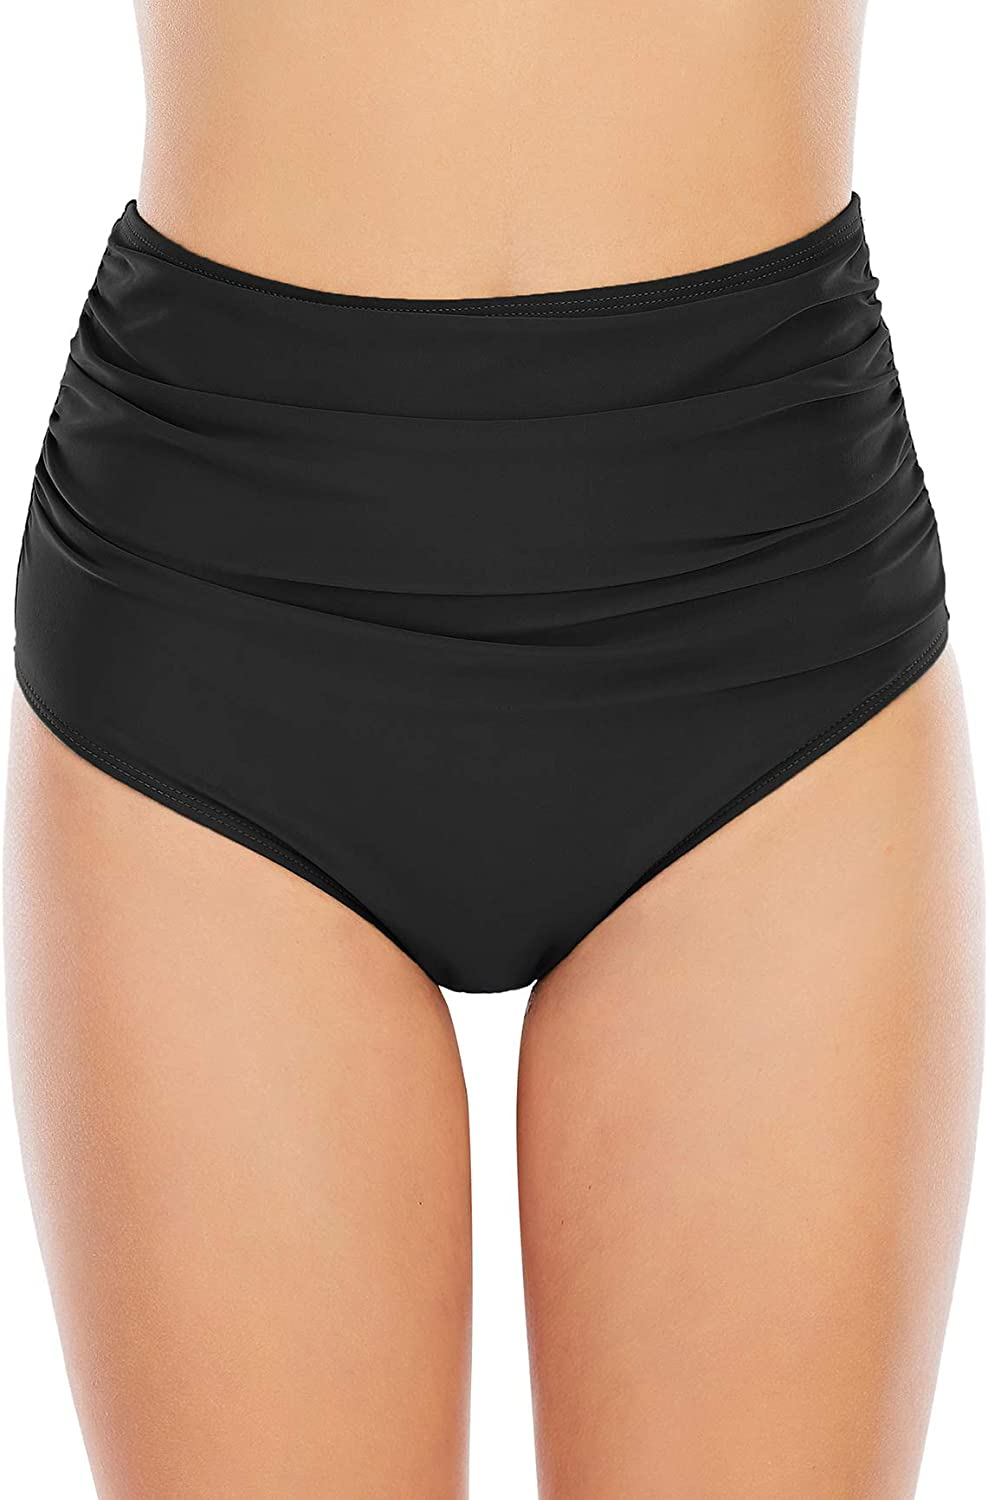 American Trends High Waisted Bikini Bottoms Ruched Tummy Control Swimsuits Bottoms Sexy Swim Bottom Bathing Suits for Women